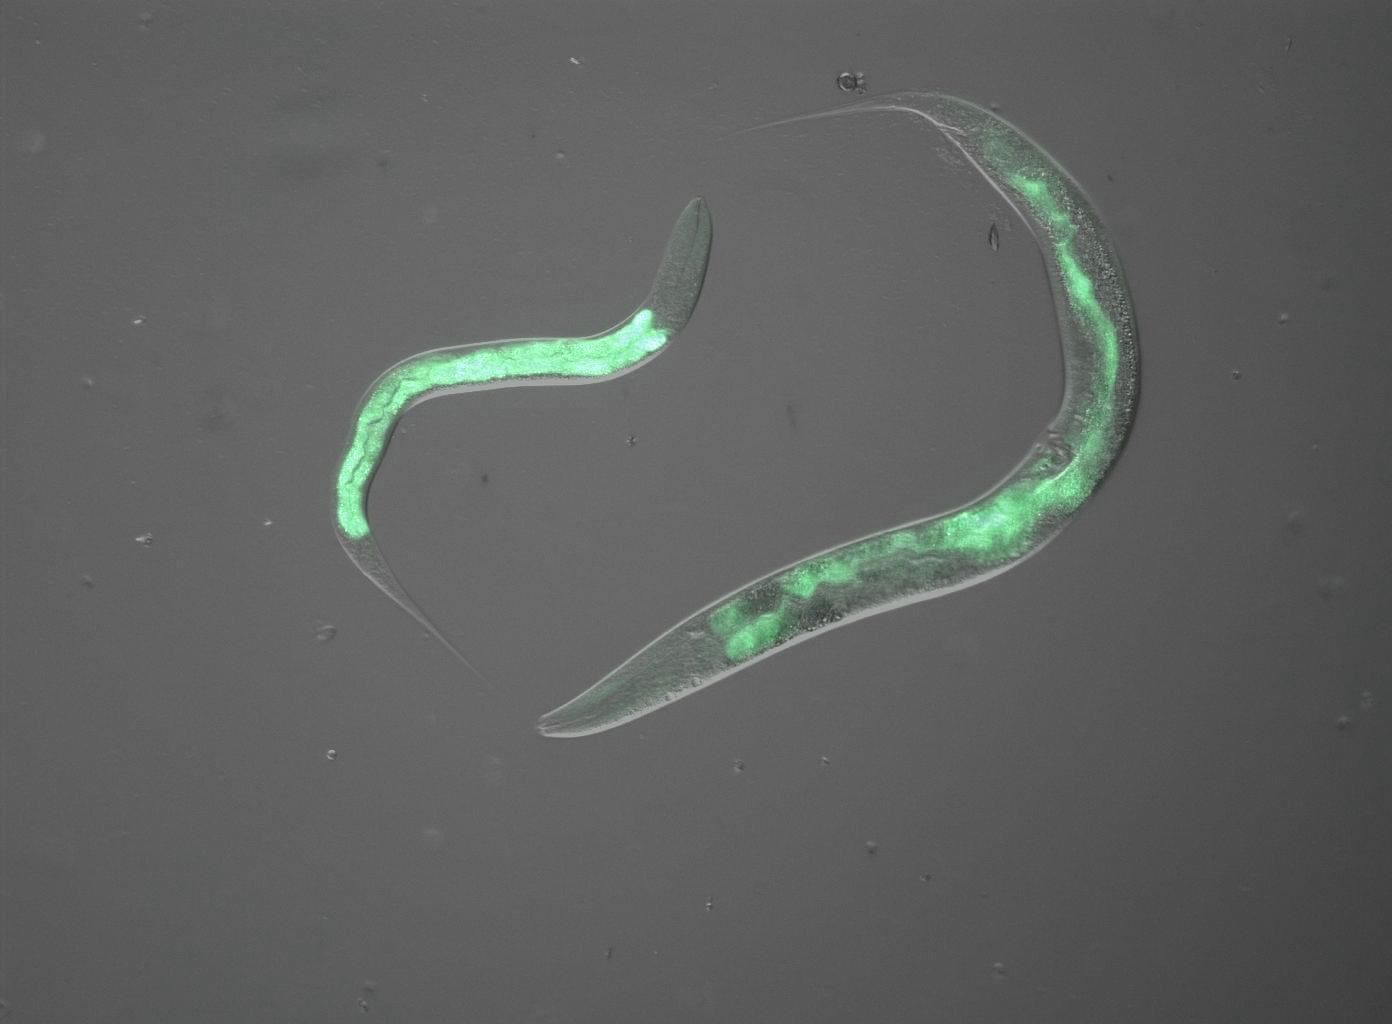 Using C. elegans instead of higher developed animals